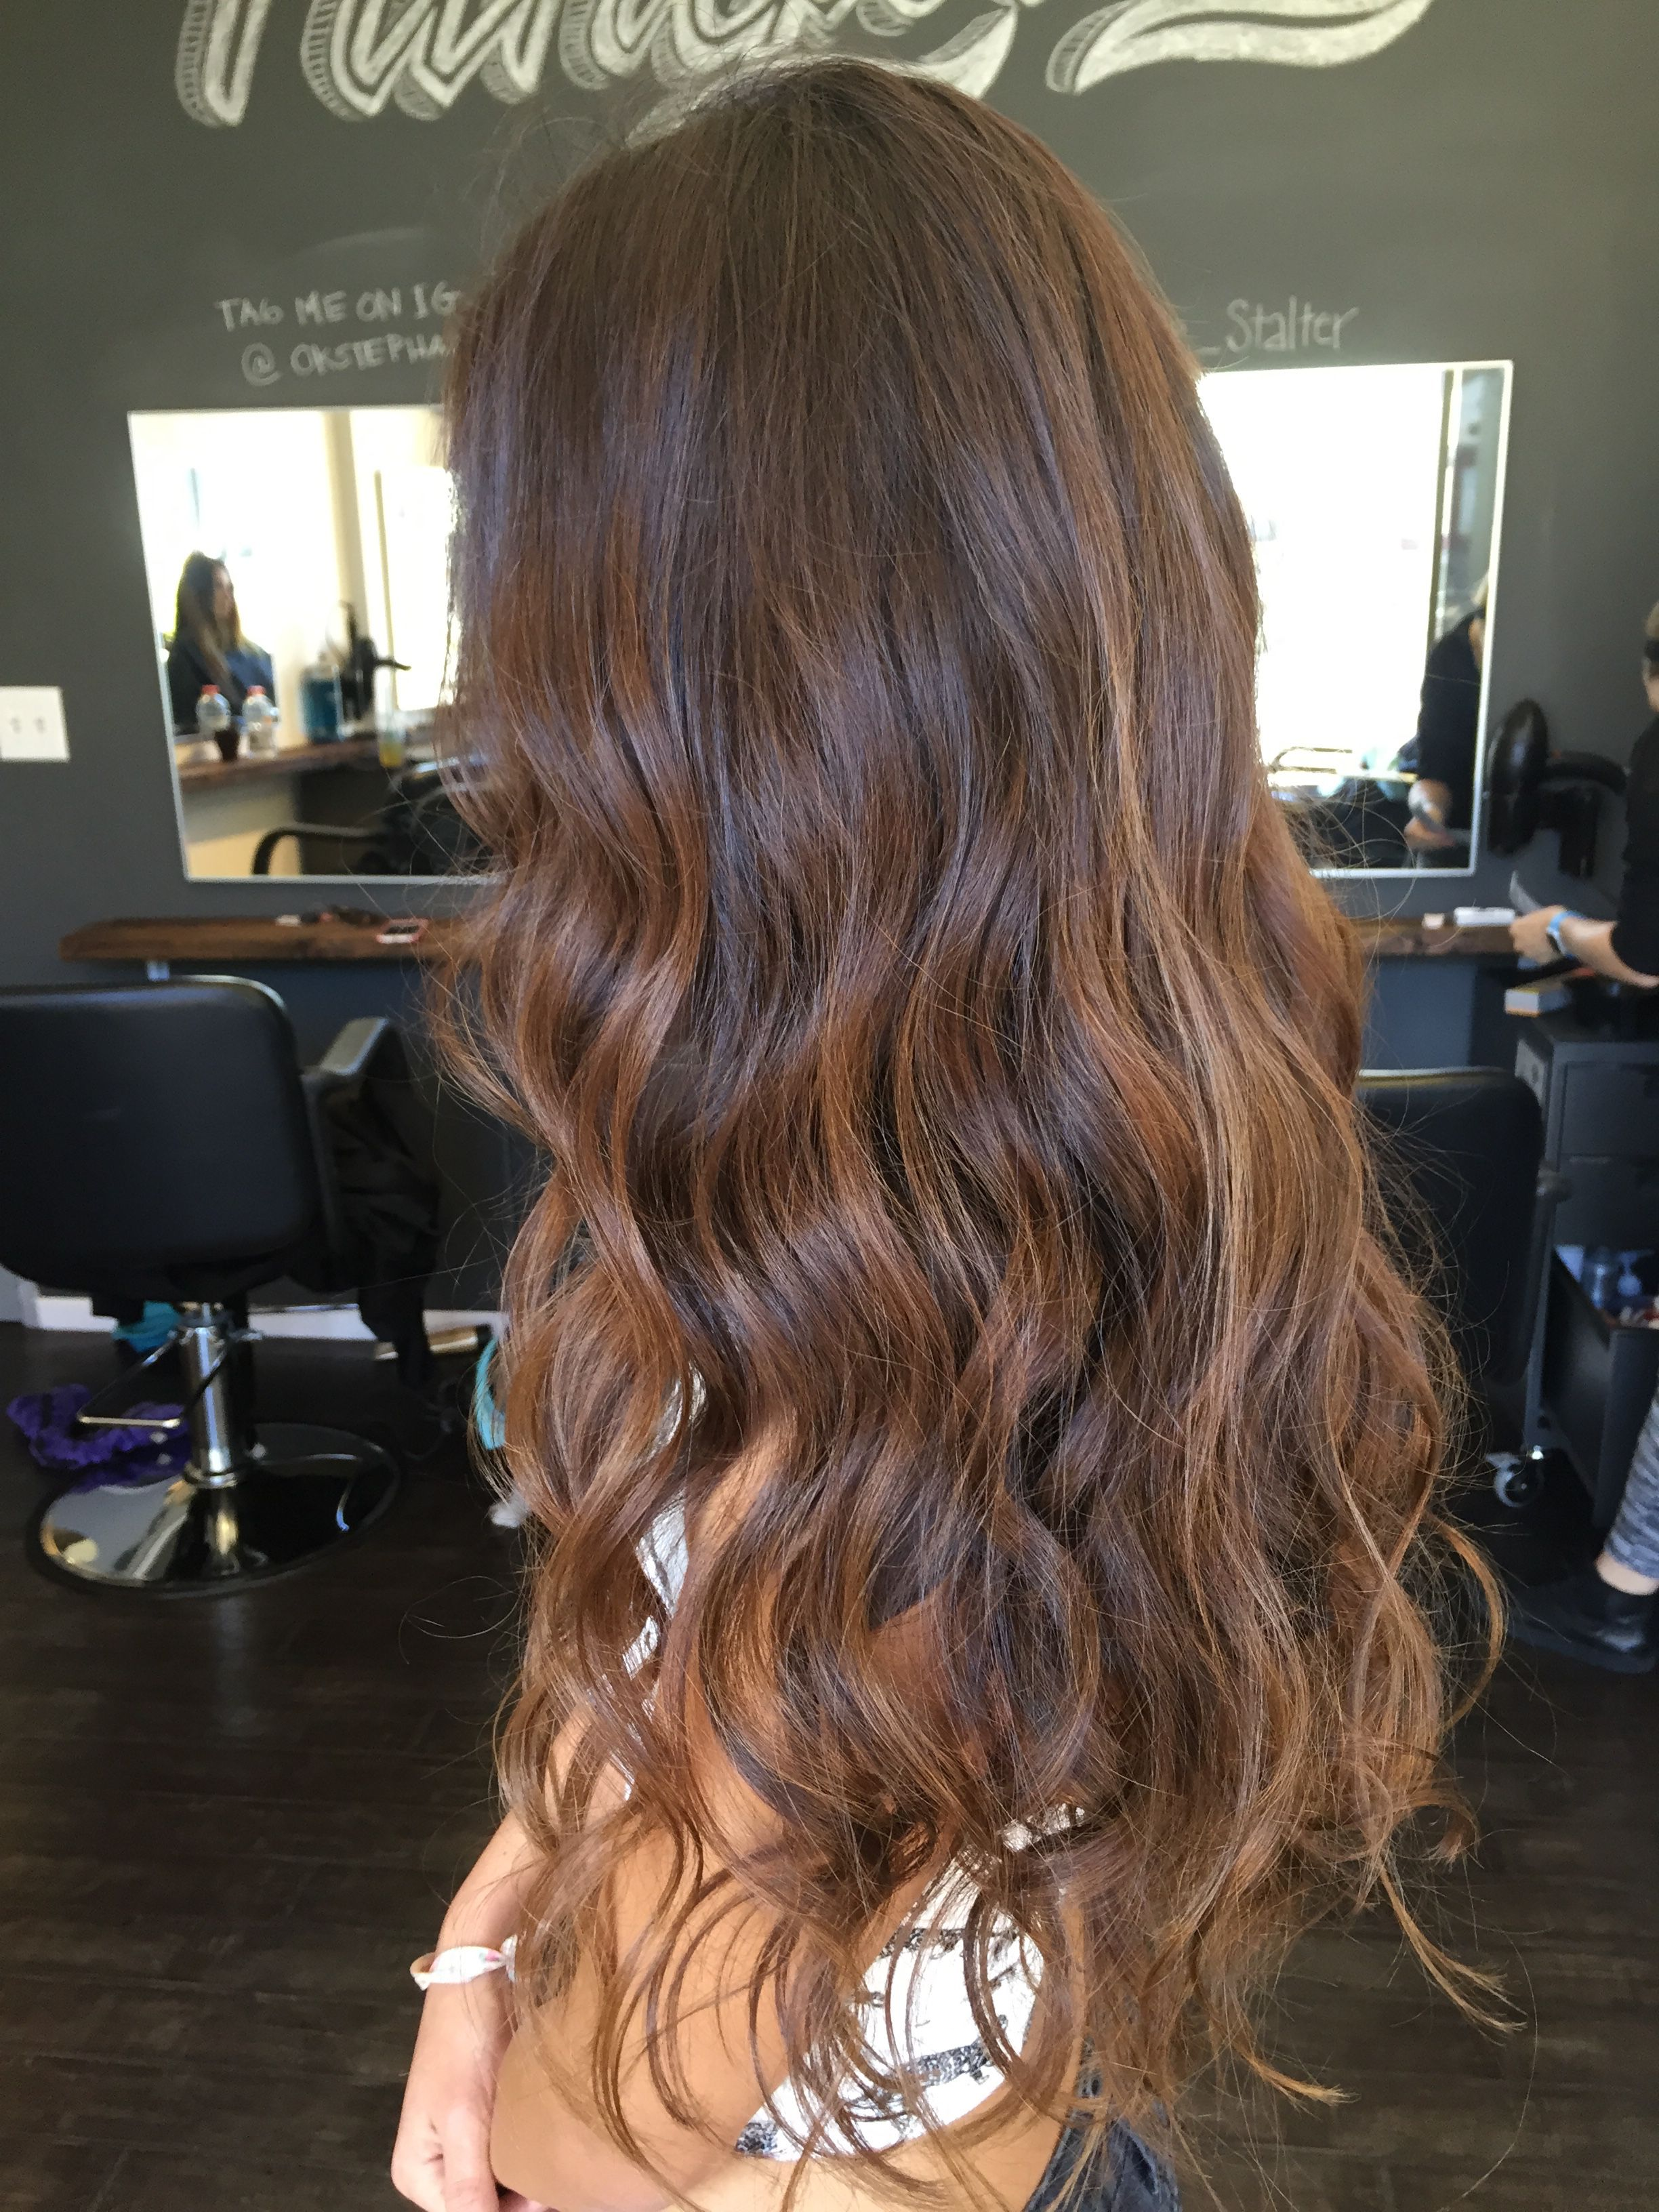 Long Surfer Girl Hair Added Very Subtle Lighter Balayage Pieces To